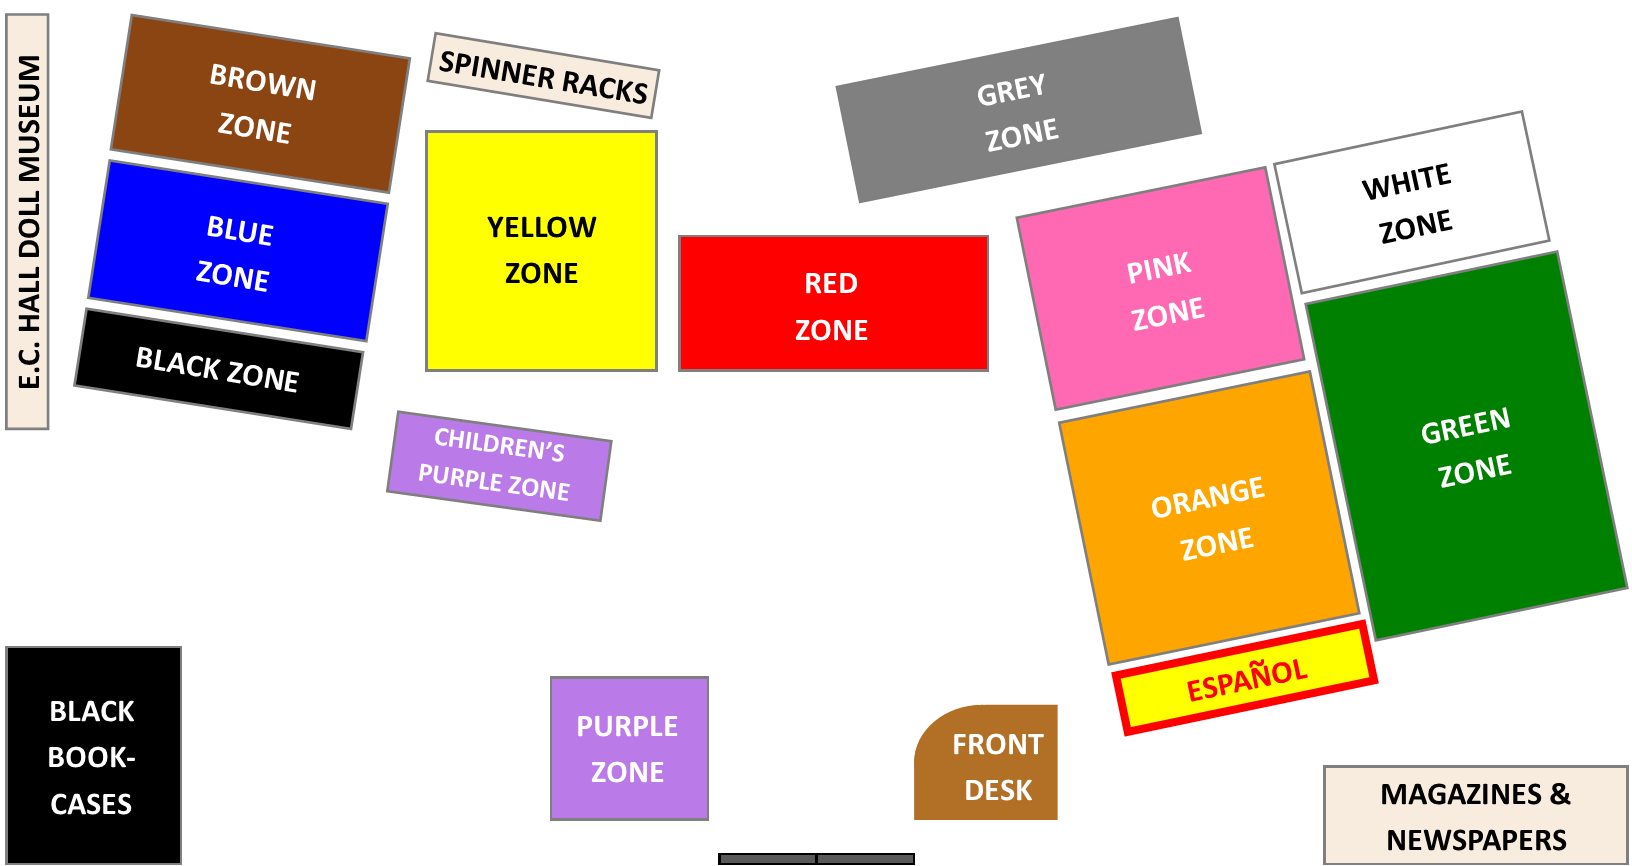 Map of the internal layout of the library